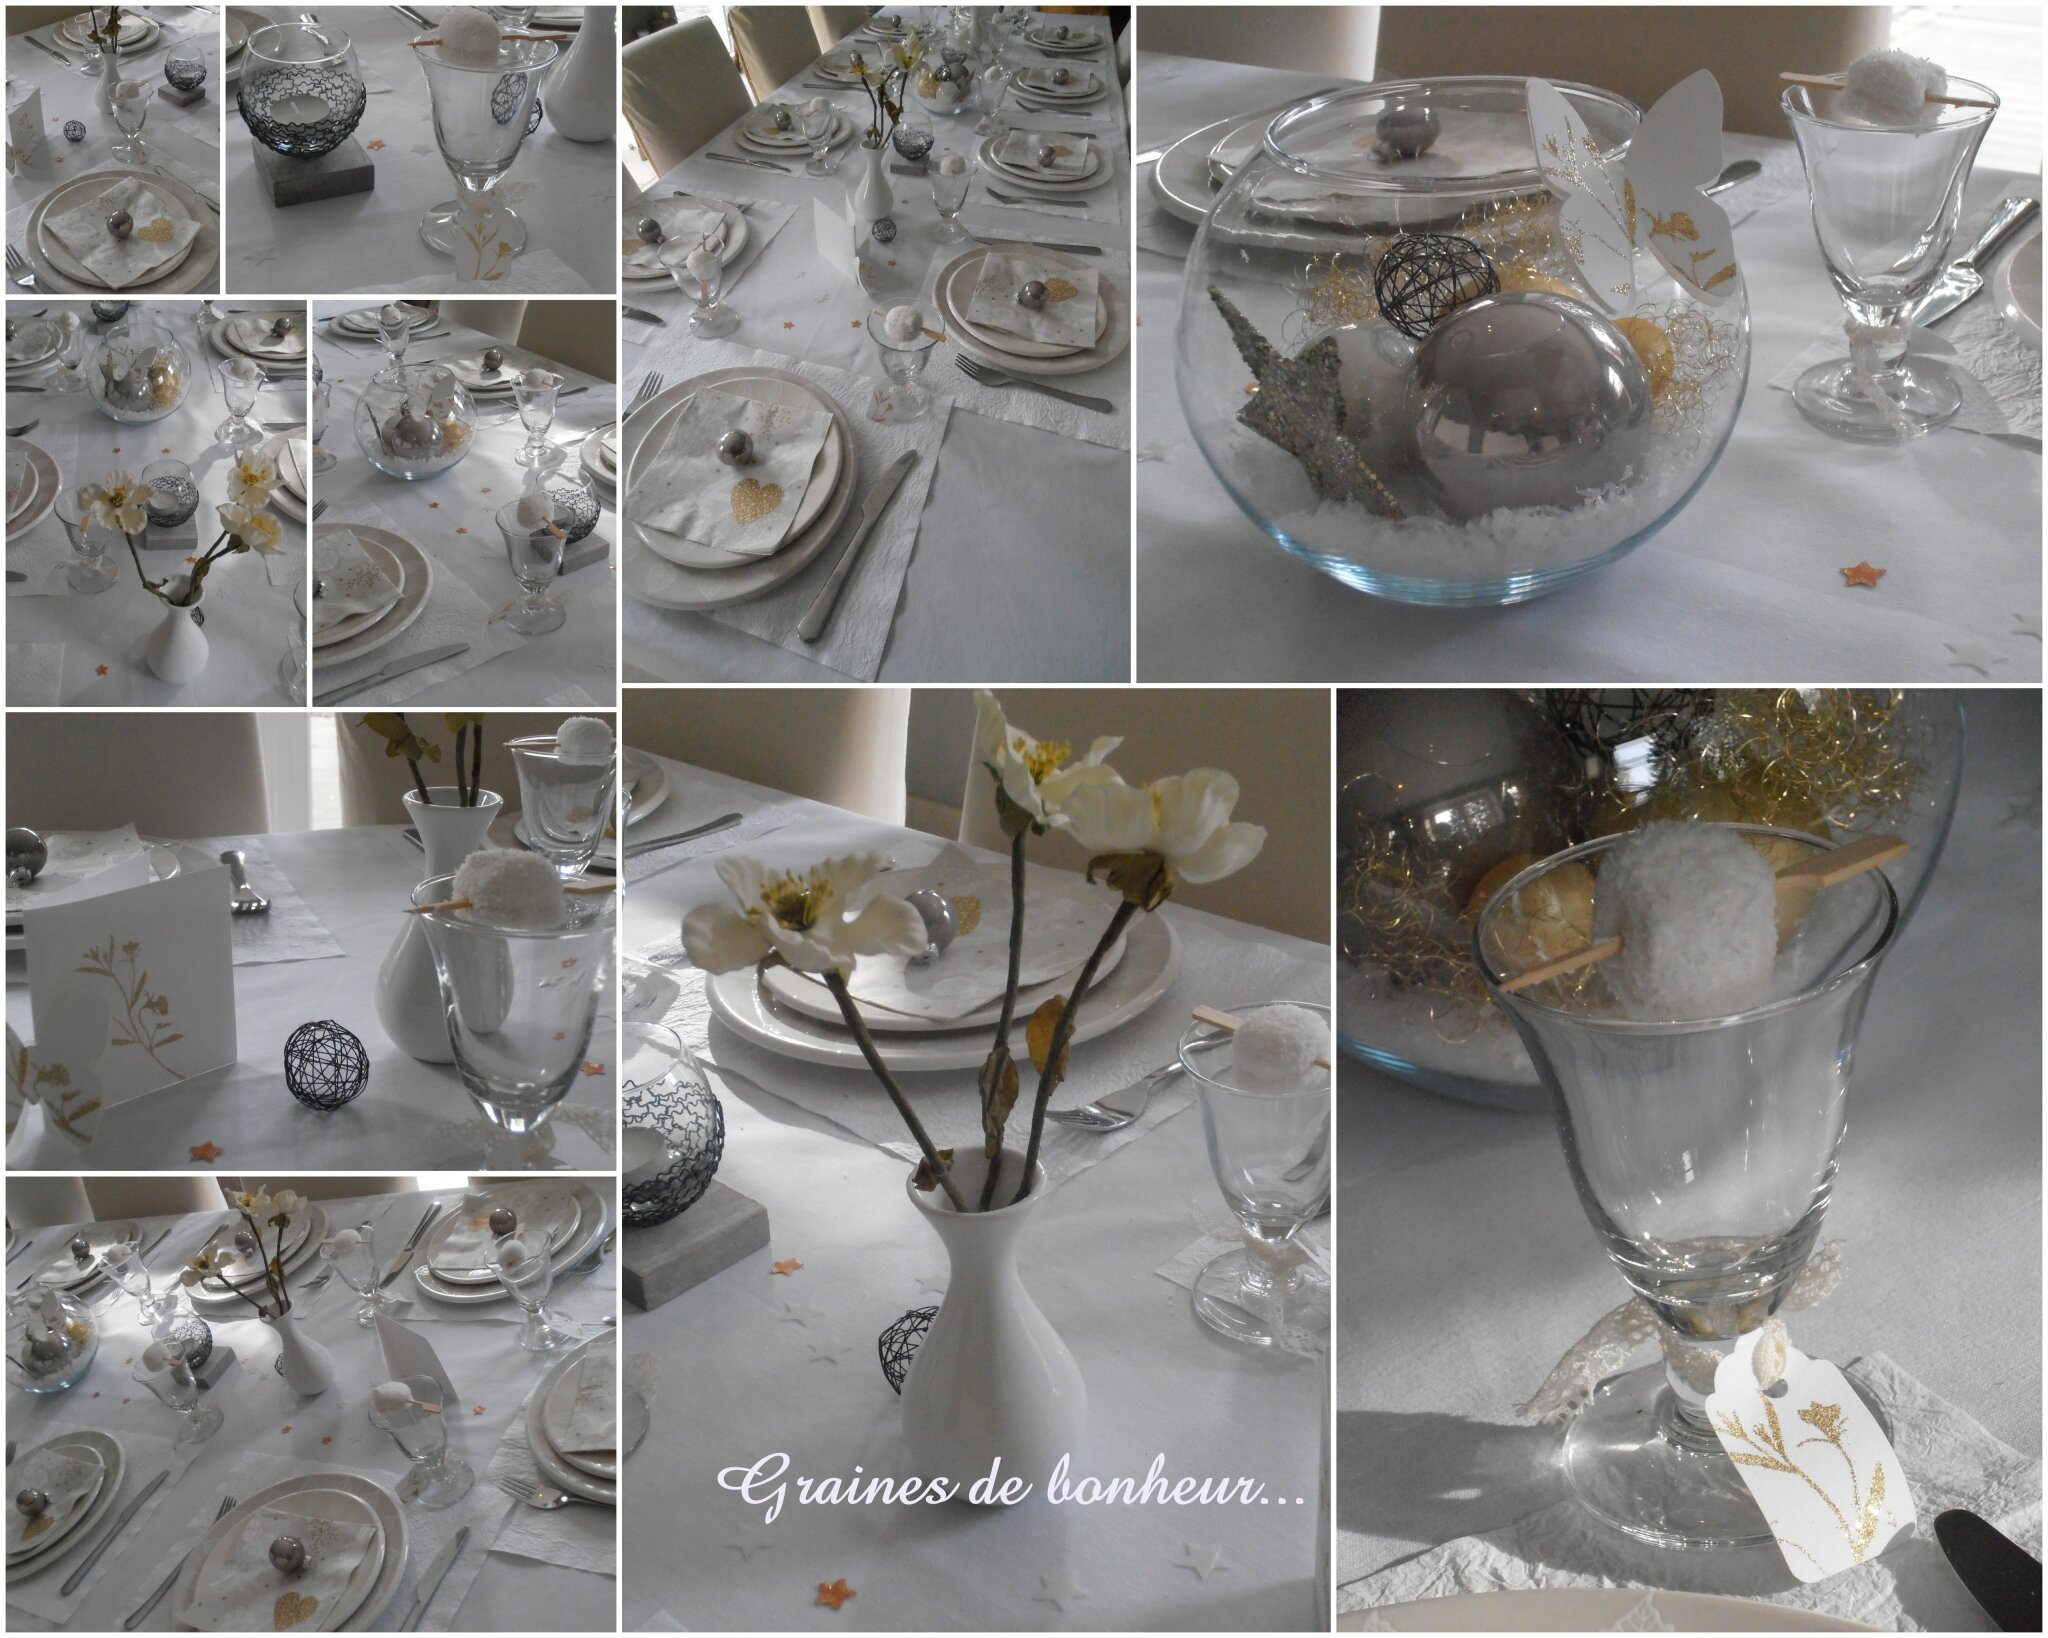 Deco table noel blanc - Decoration de table de noel argent ...